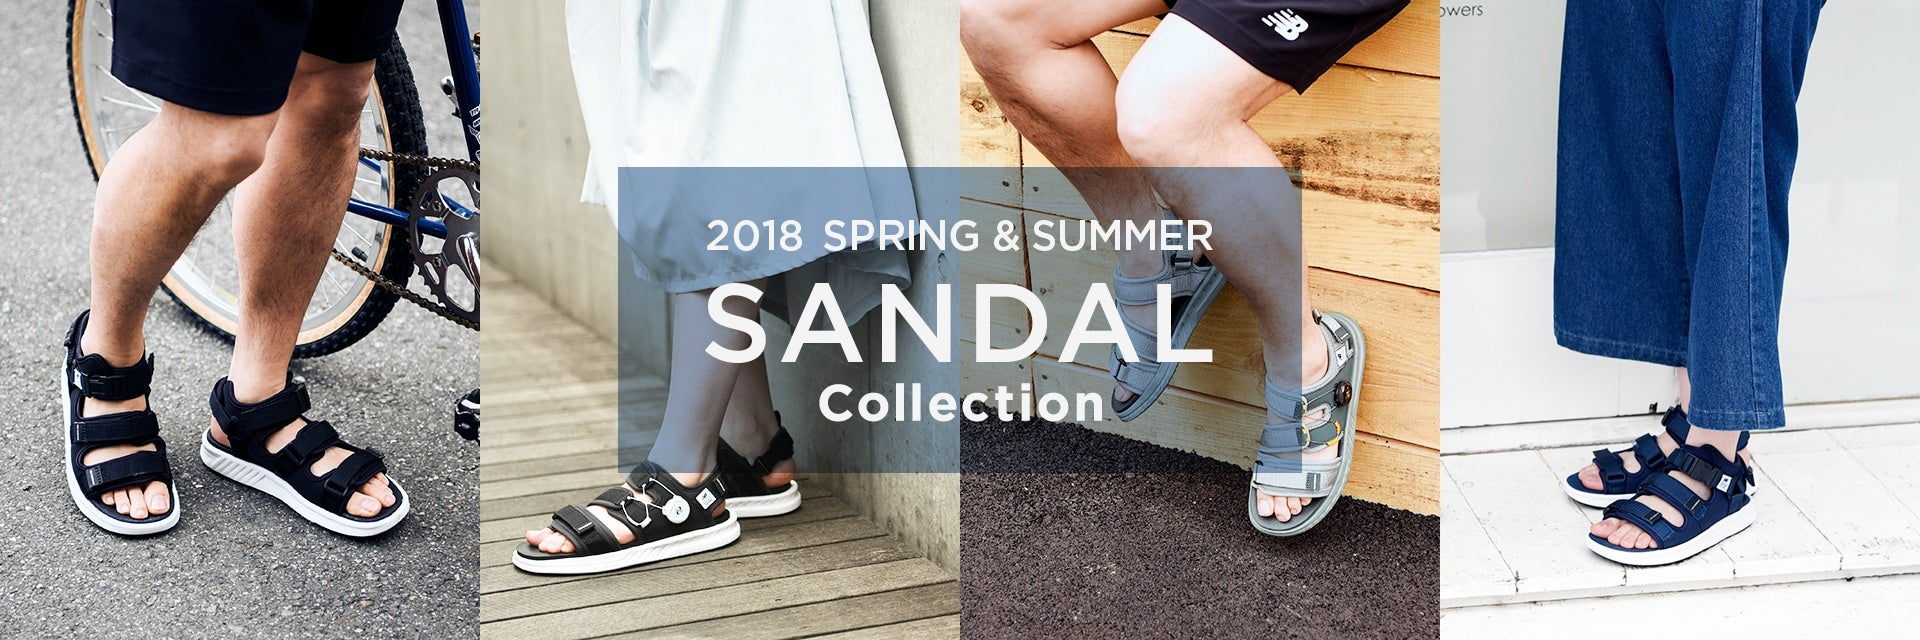 2018 SPRING&SUMMER SANDAL Collection